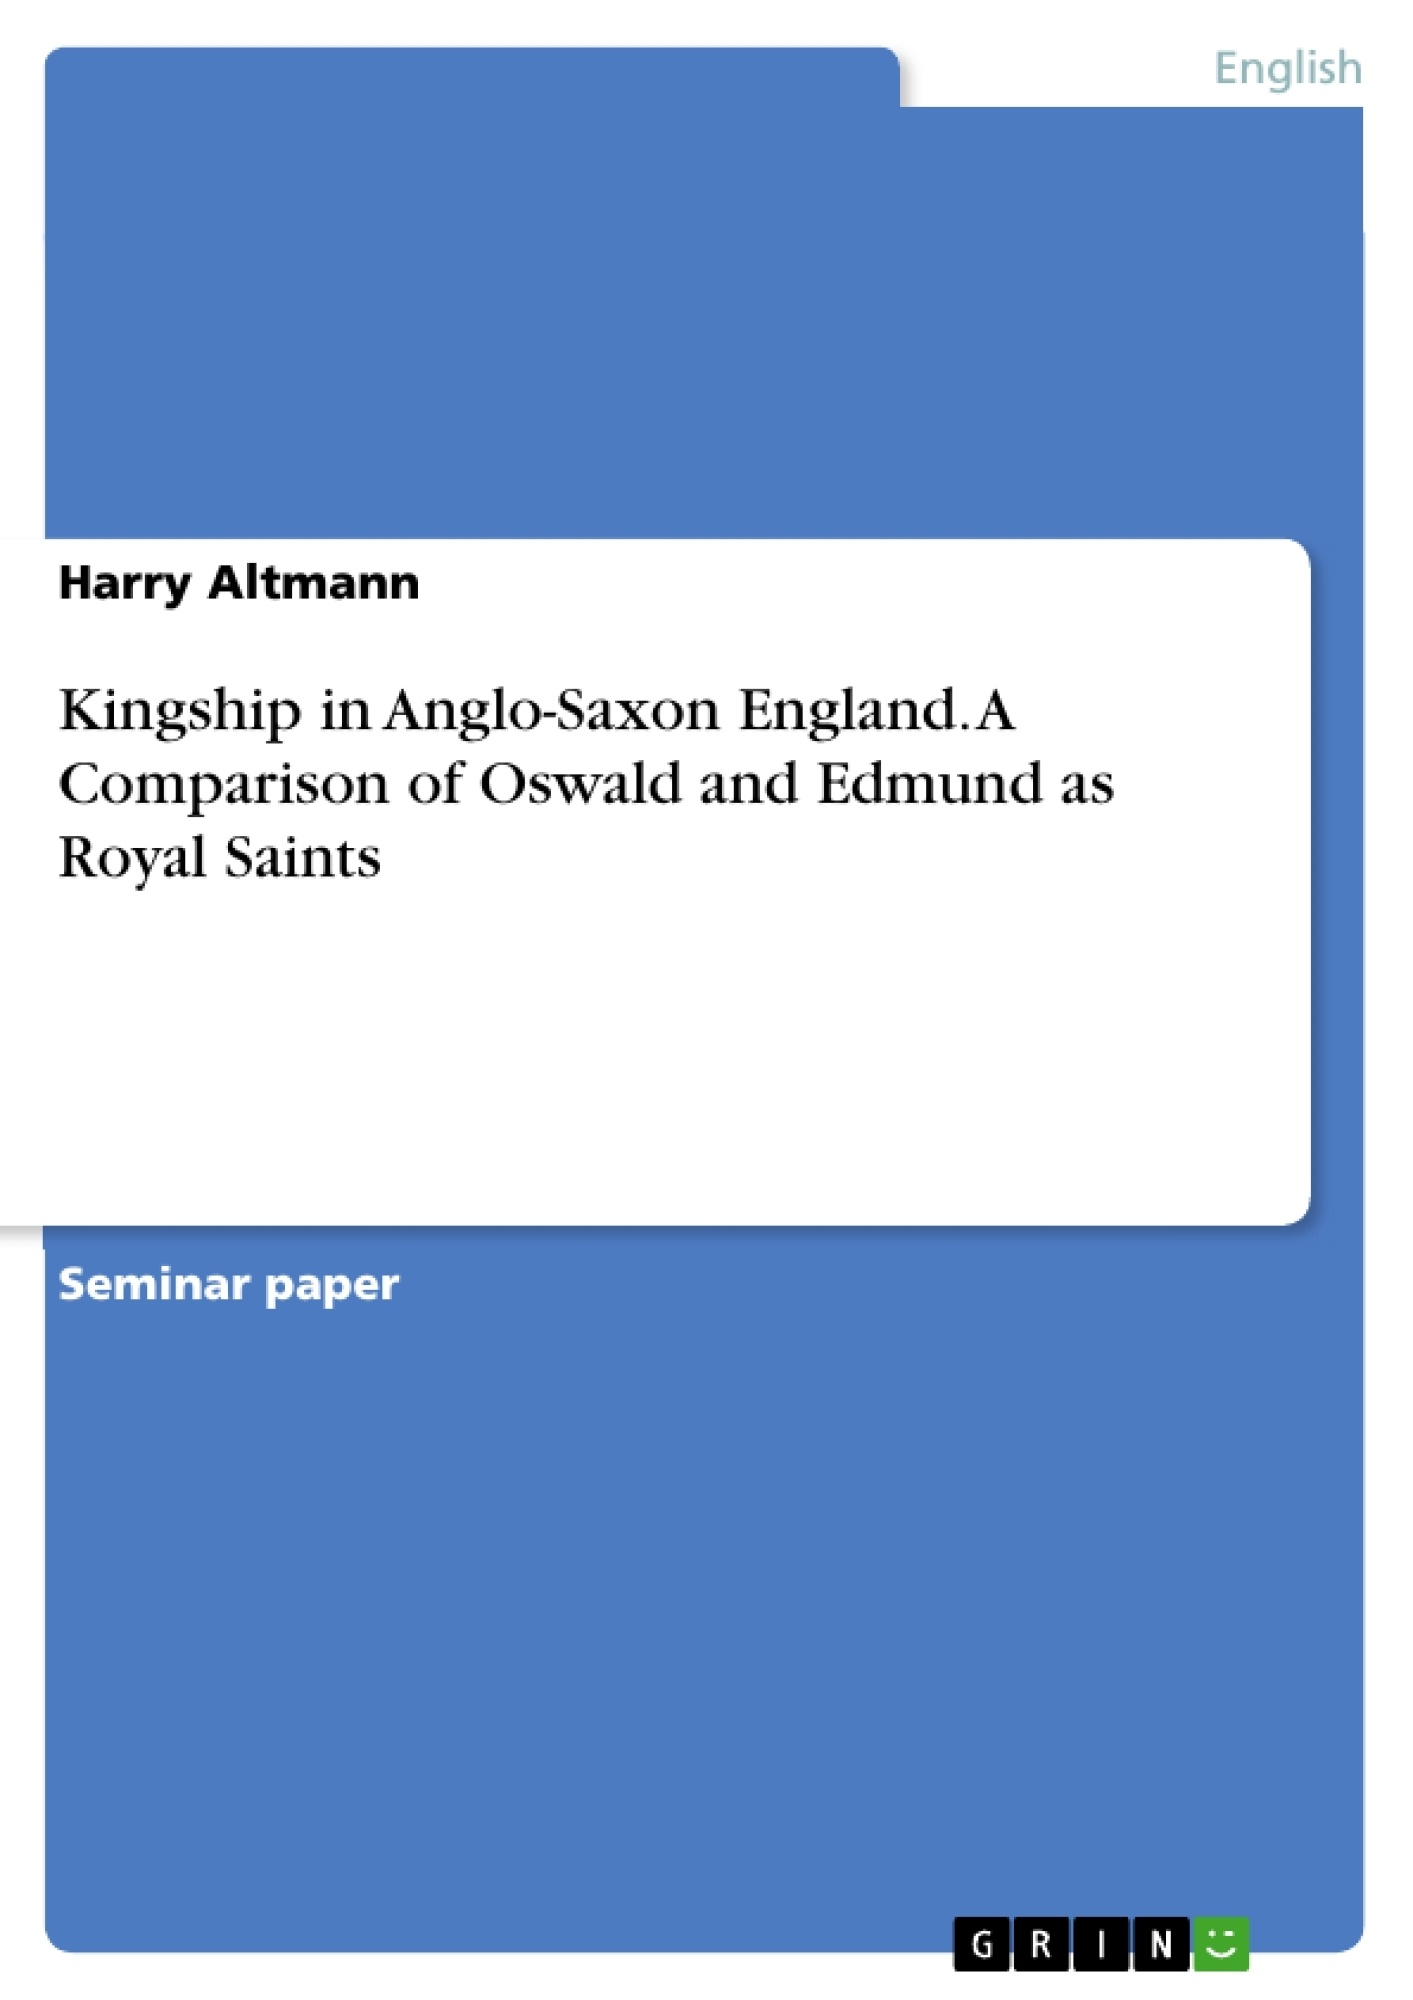 Title: Kingship in Anglo-Saxon England. A Comparison of Oswald and Edmund as Royal Saints